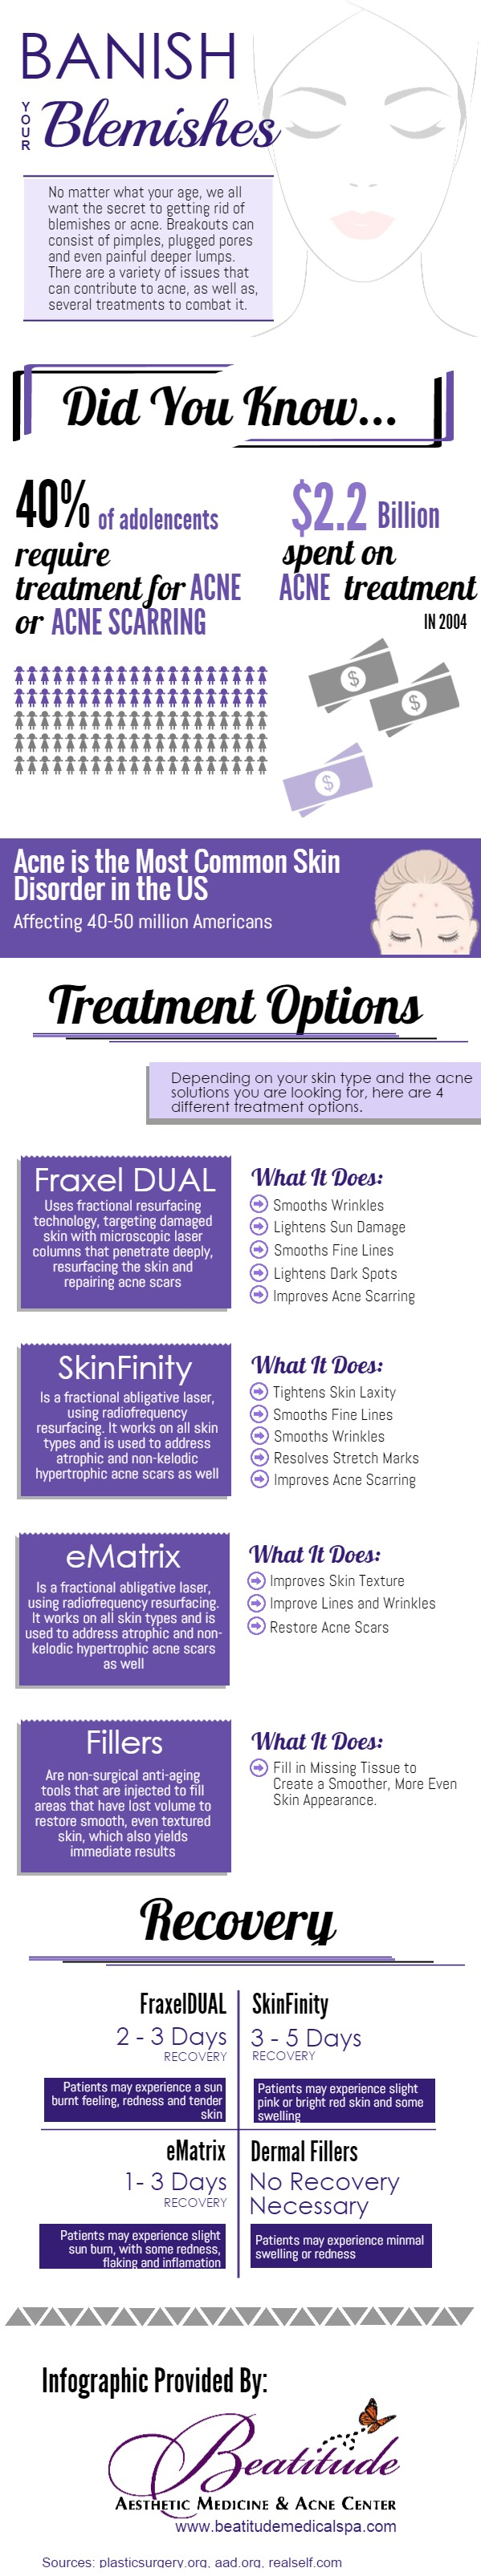 Acne treatment infographic - Beatitude